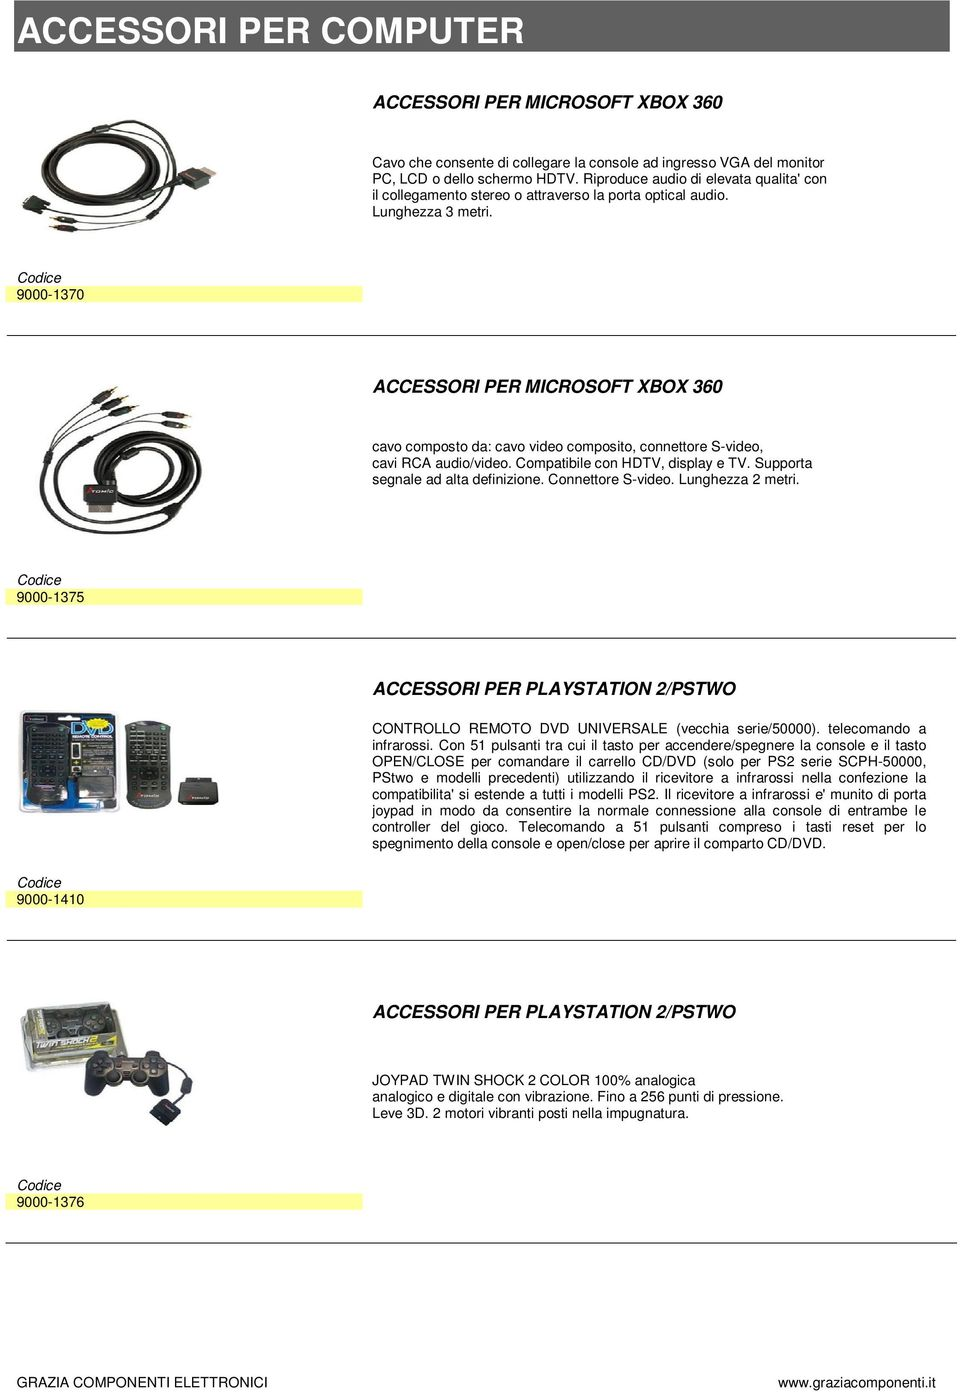 9000-1370 ACCESSORI PER MICROSOFT XBOX 360 cavo composto da: cavo video composito, connettore S-video, cavi RCA audio/video. Compatibile con HDTV, display e TV. Supporta segnale ad alta definizione.